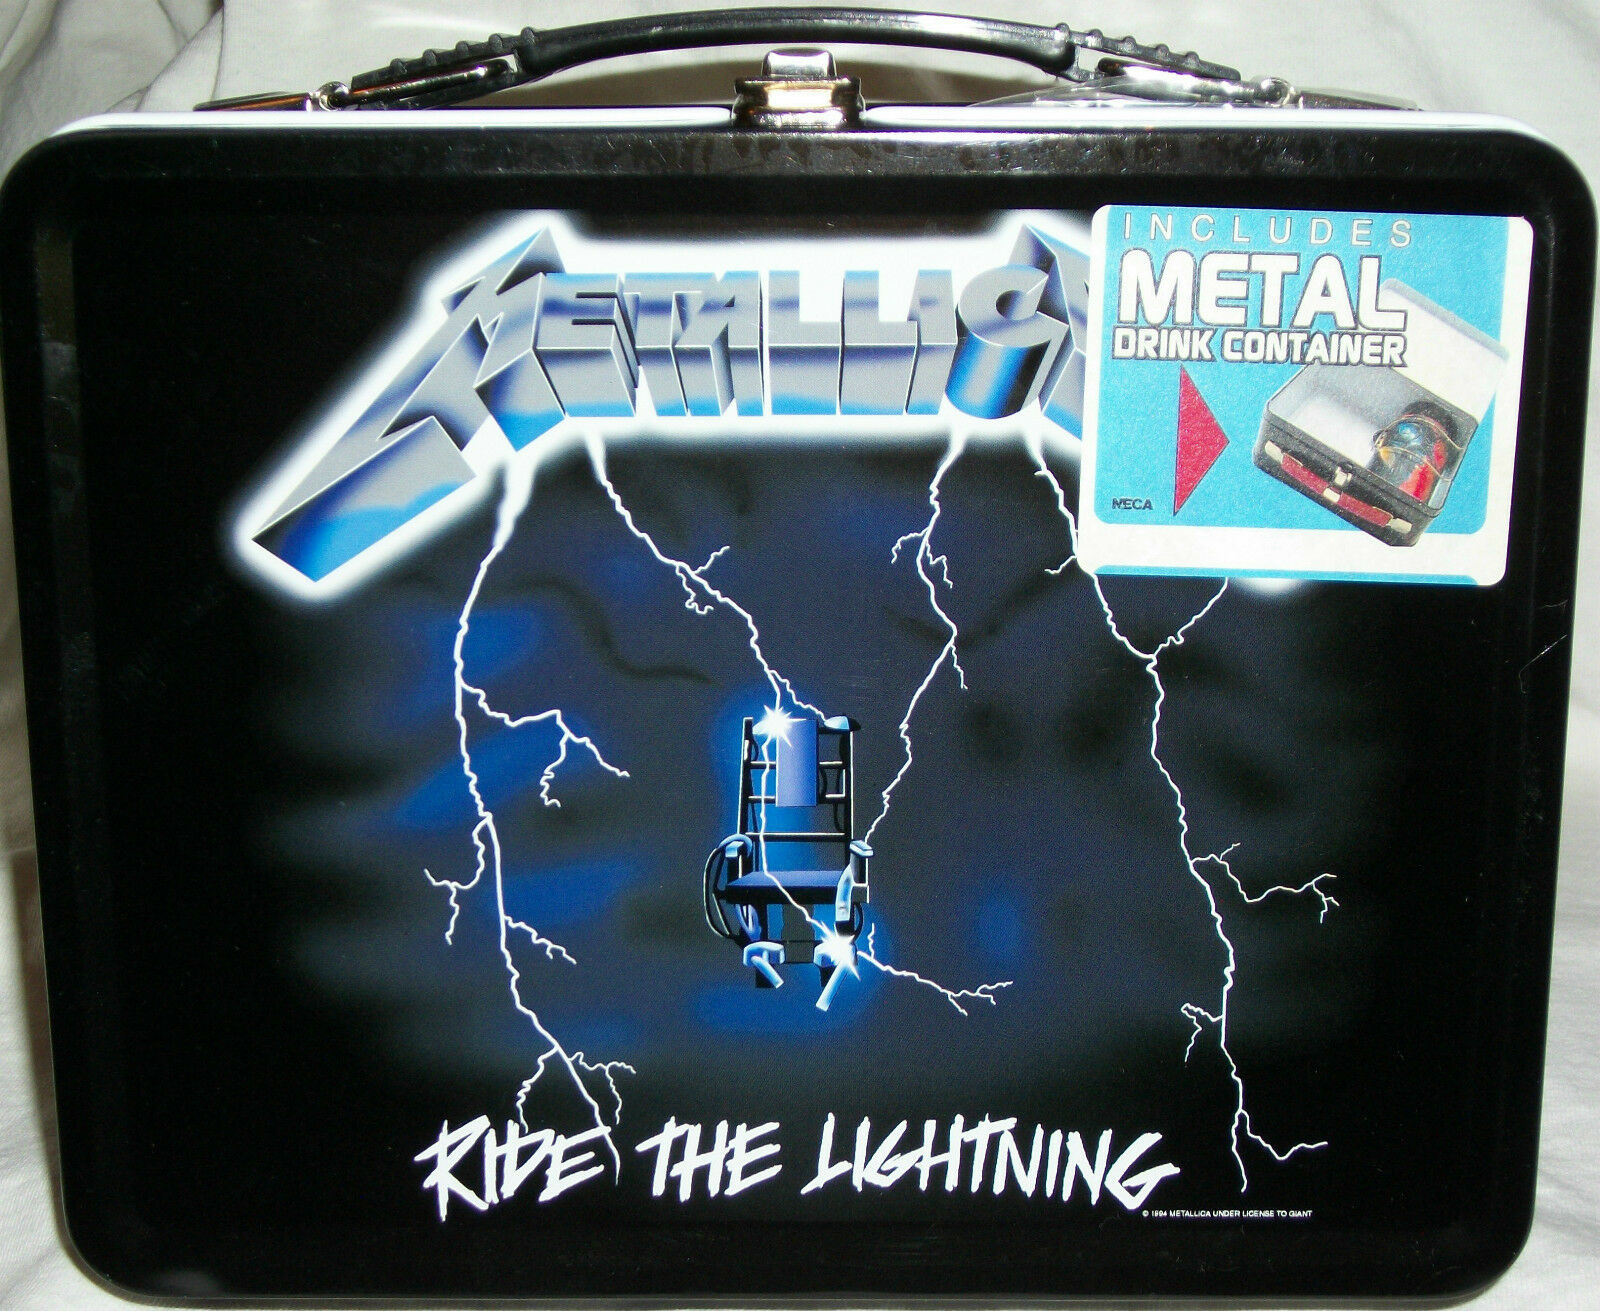 Mettuttiica Ride The Lightning Back To School lavoro Metal Lunchscatola Thermos Metalica